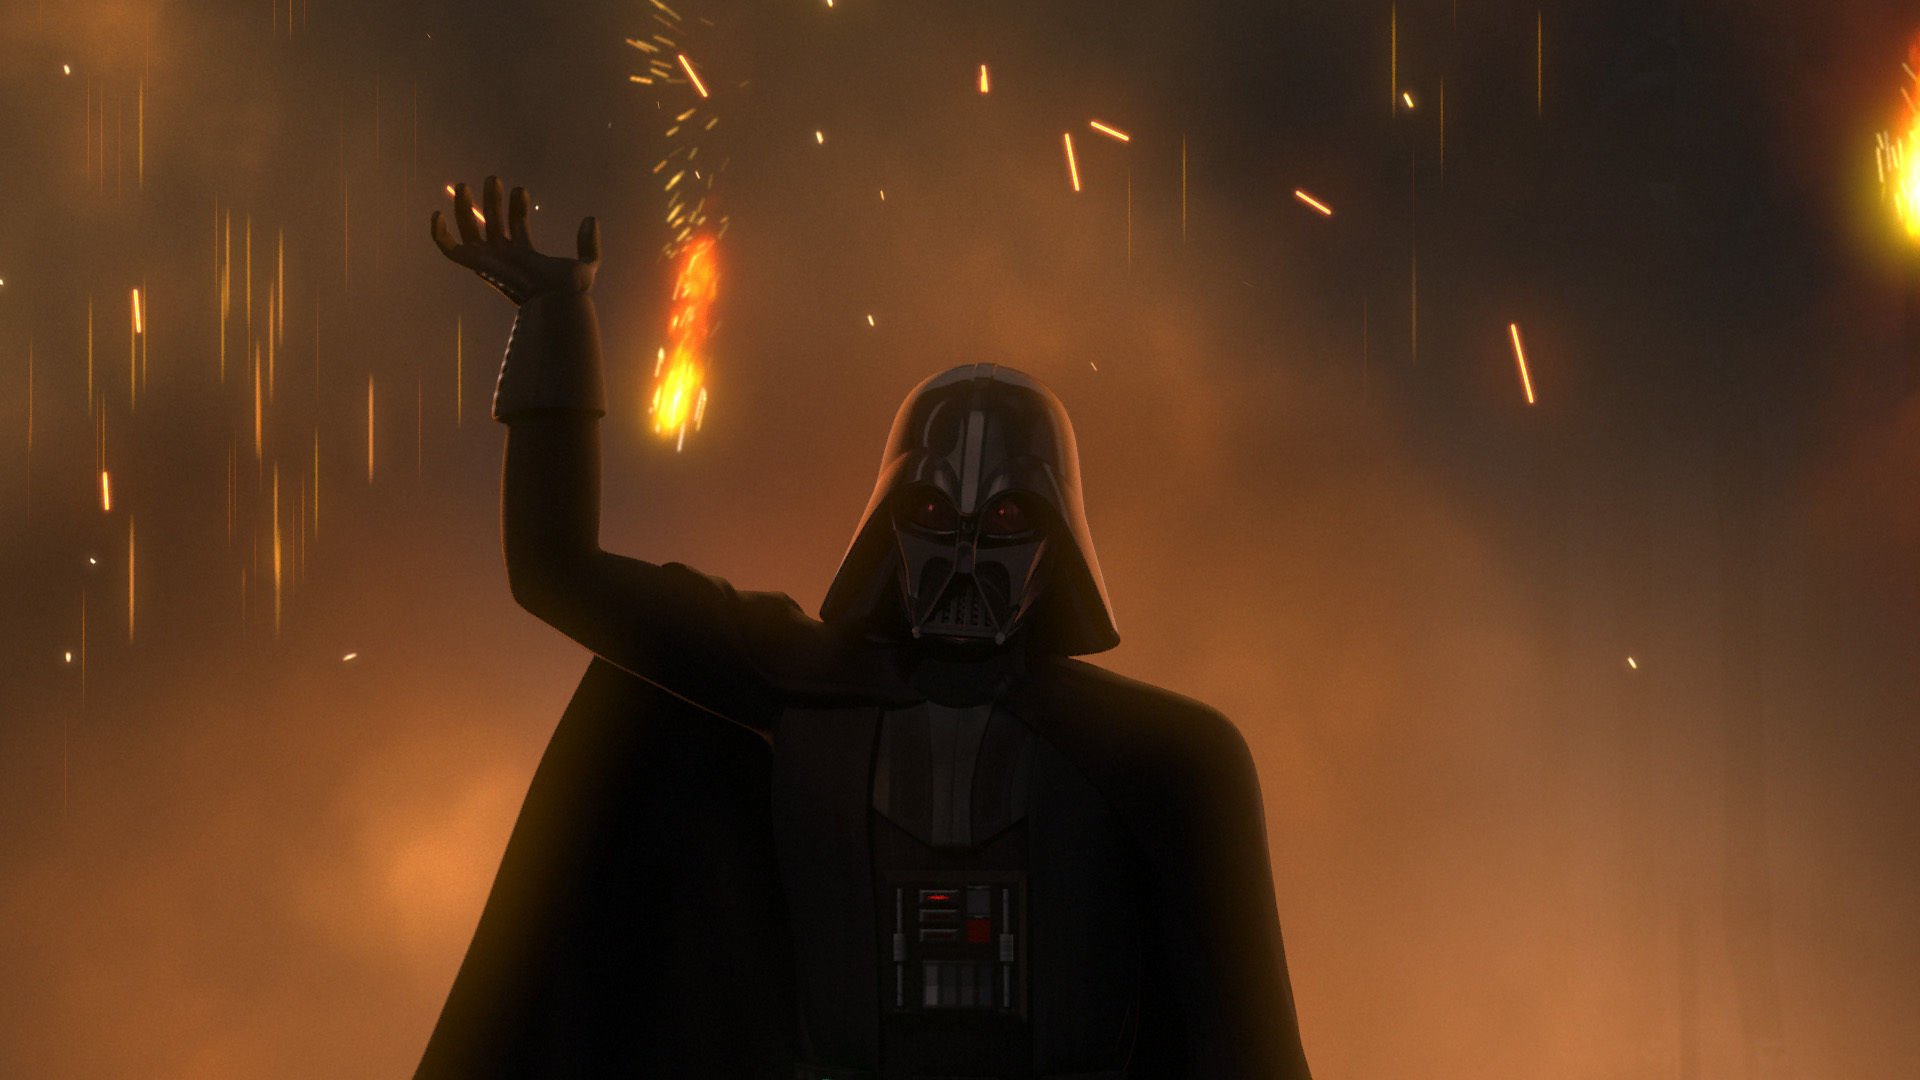 Televisieprogramma - Star Wars Rebels  Darth Vader Wallpaper